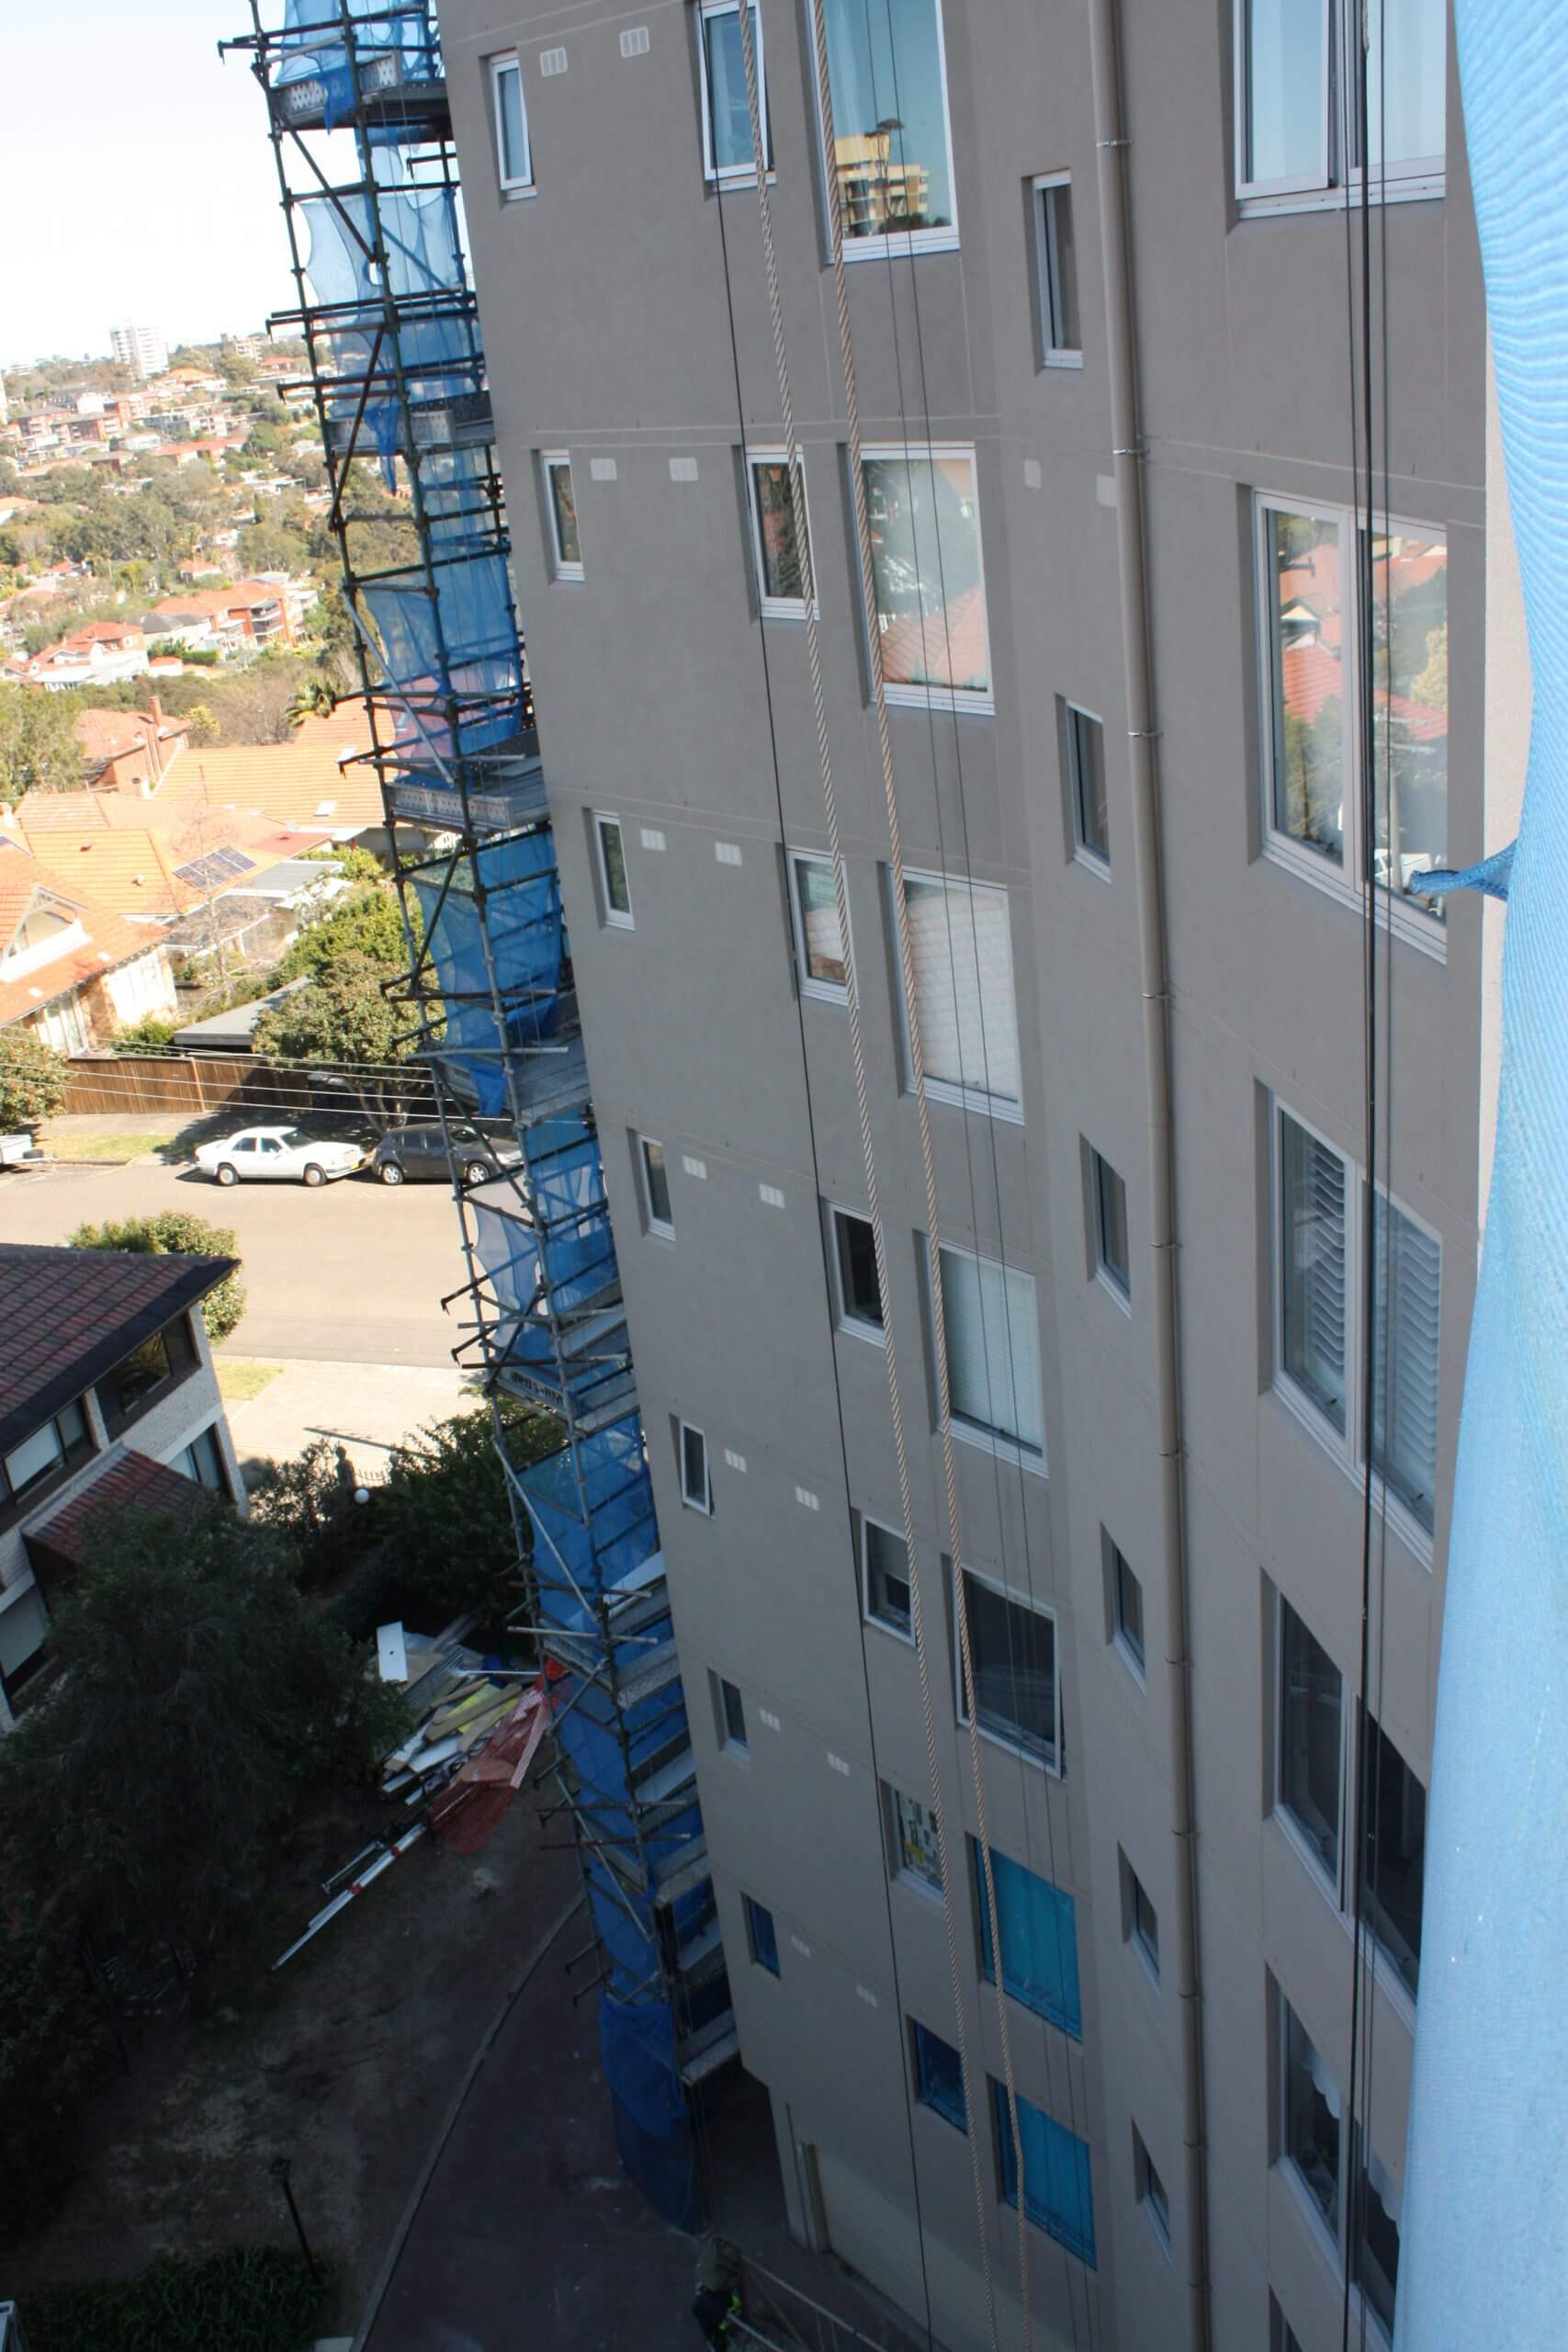 Repair Work On The Building - Façade Upgrades - Remedial Building Services